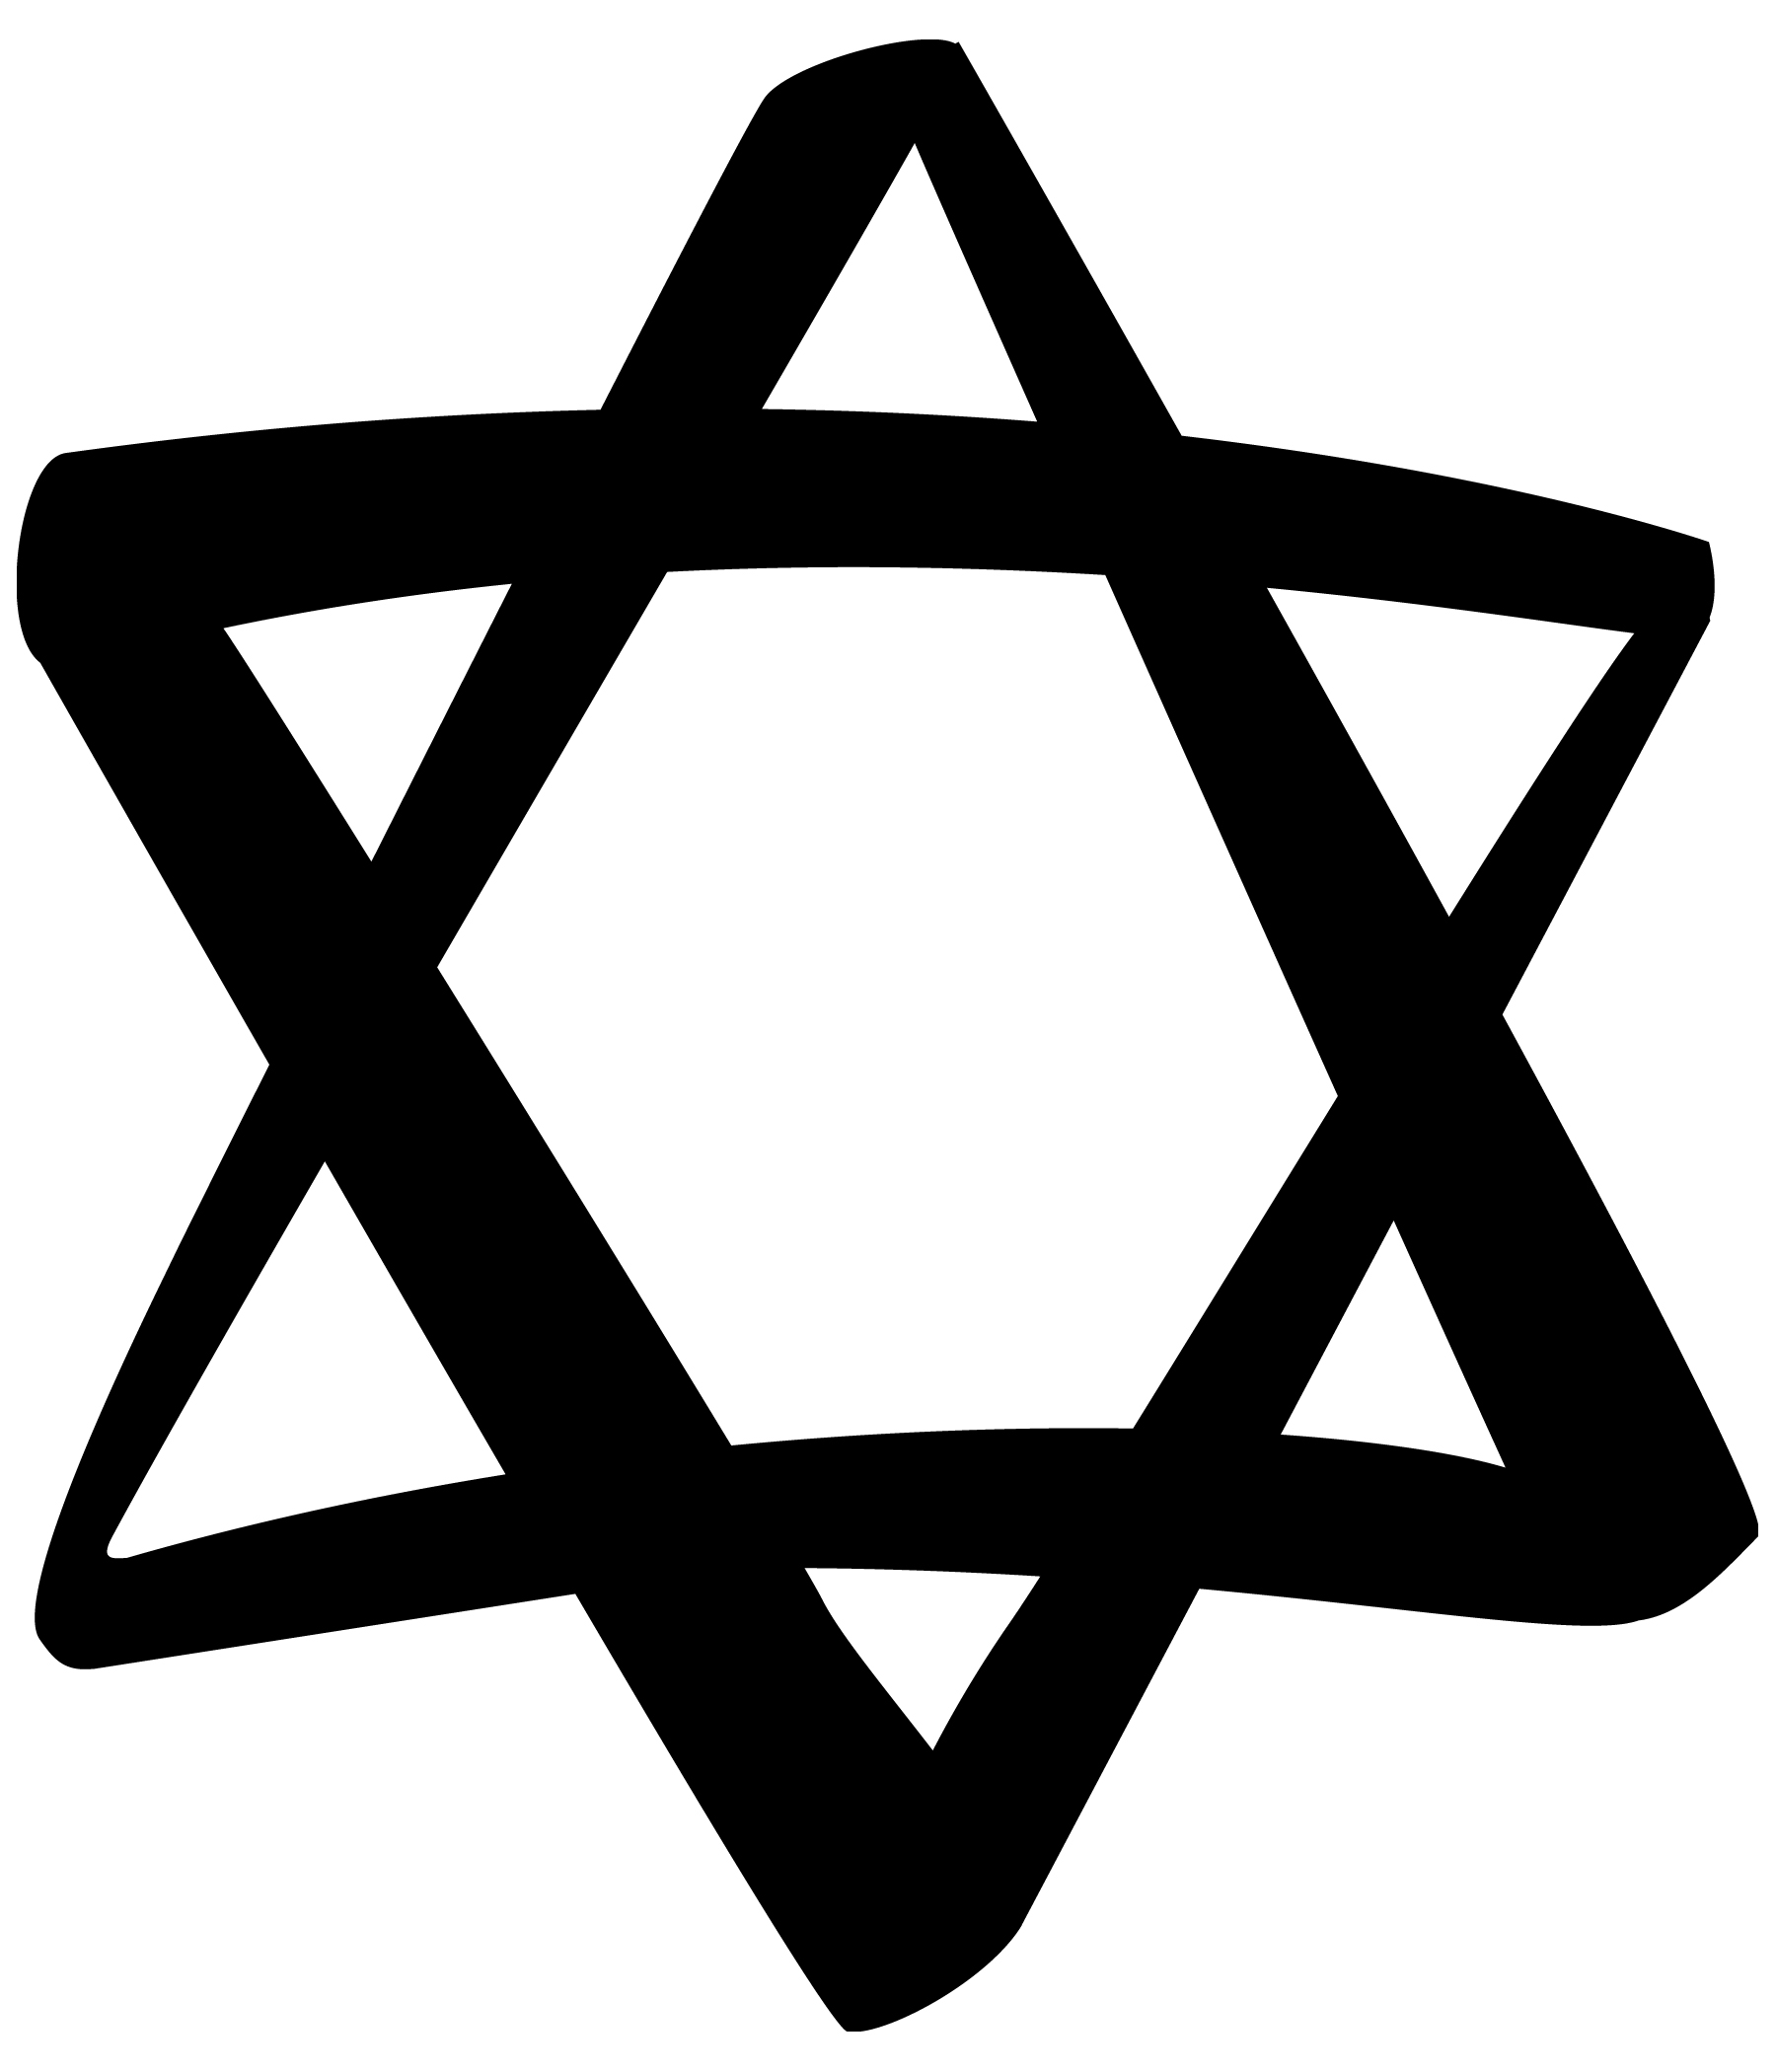 gregor as symbol of the jewish race It sounds like only the jews are protected by the un genocide convention as only the jews are human and goys just don't qualify since they are deemed to be cattle or worse and therefore not human or even part of a race.